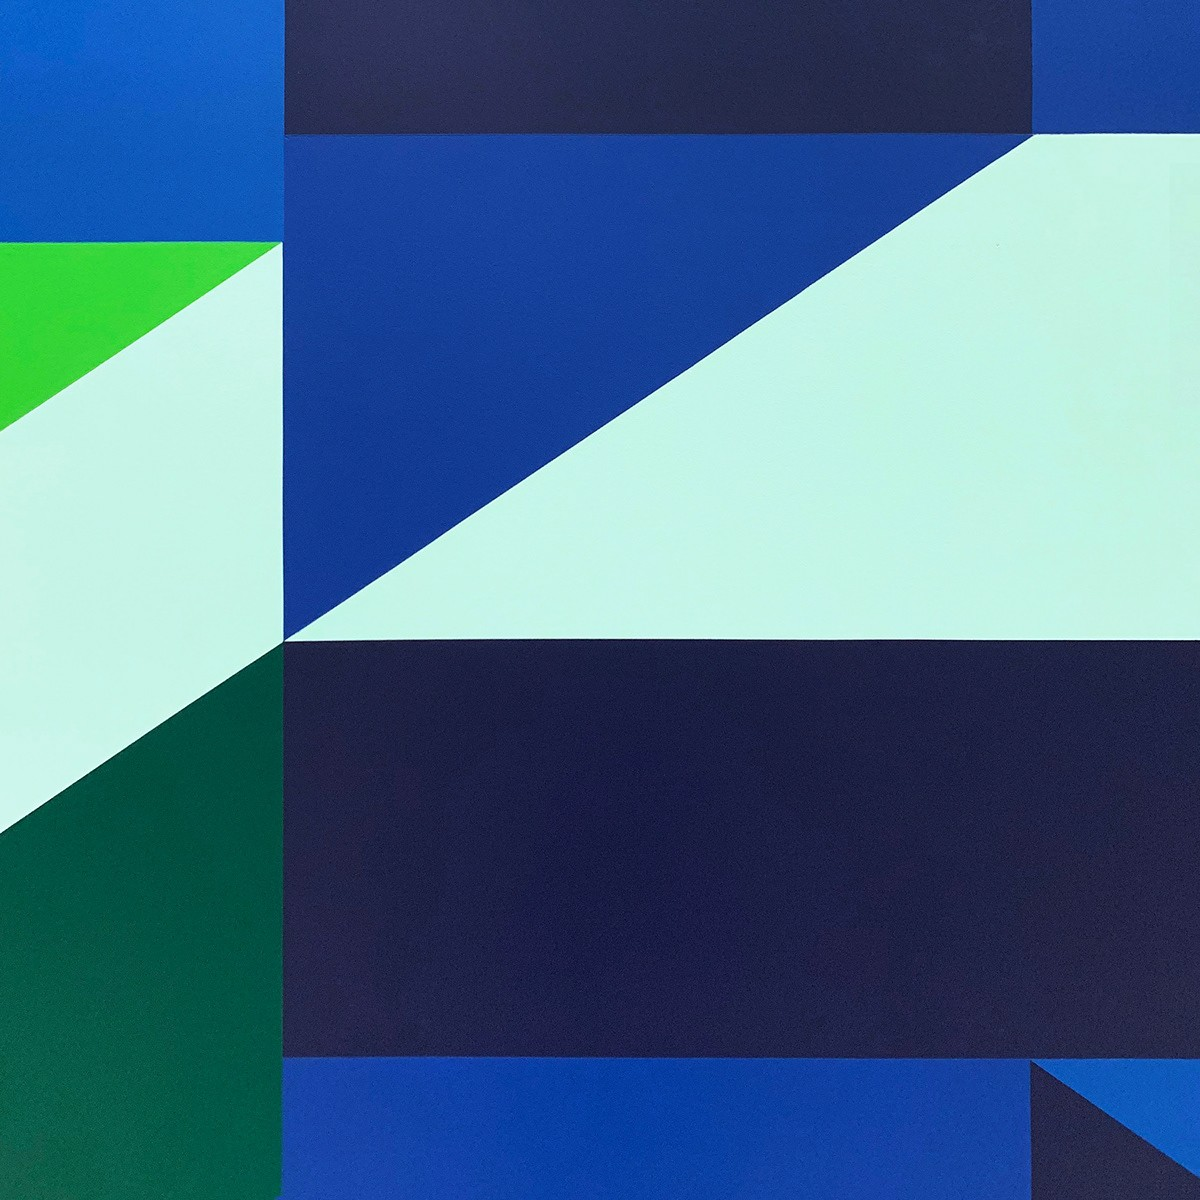 ABSTRACT GEOMETRIC MURAL IN A HOTEL